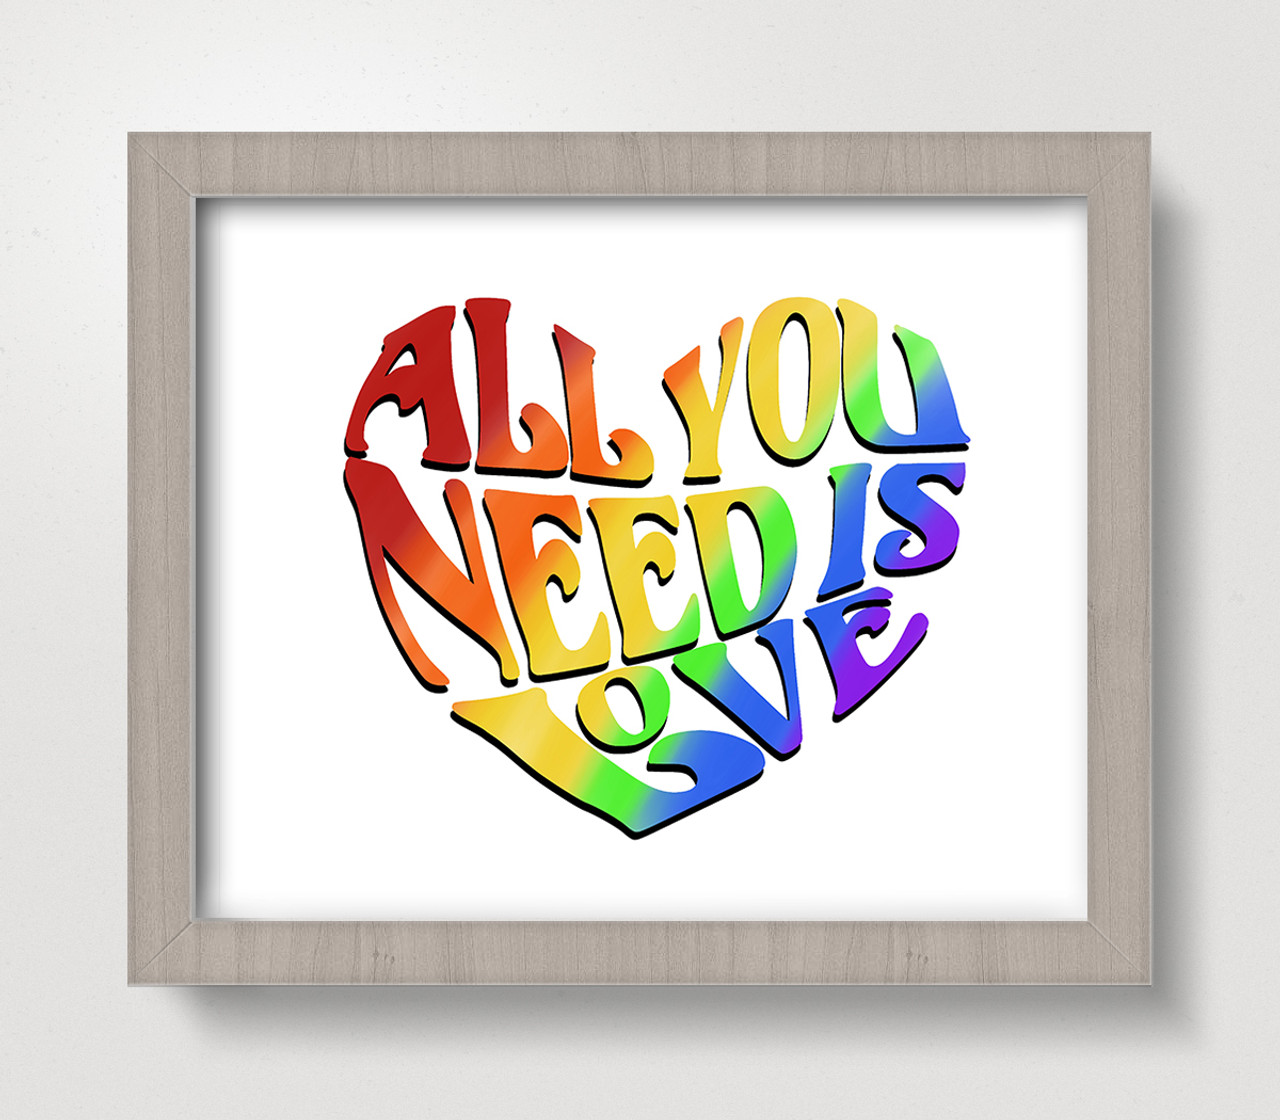 All You Need is Love 8 x 10 Rainbow Art Print - Beatles Inspired Wall Decor Home Kitchen